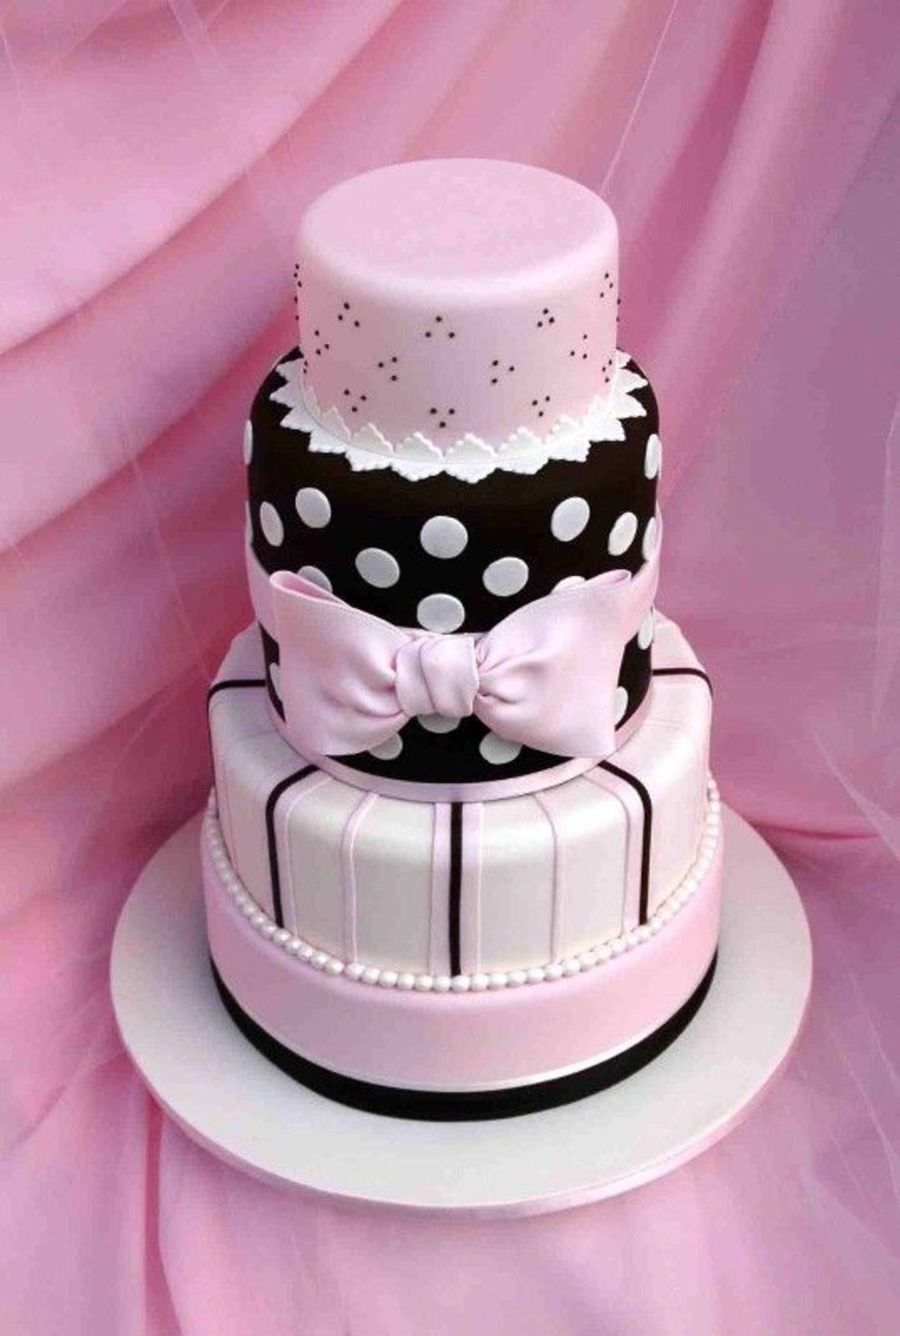 5 Tiered, Fondant Display Cake on Cake Central | Recipes | Pinterest ...